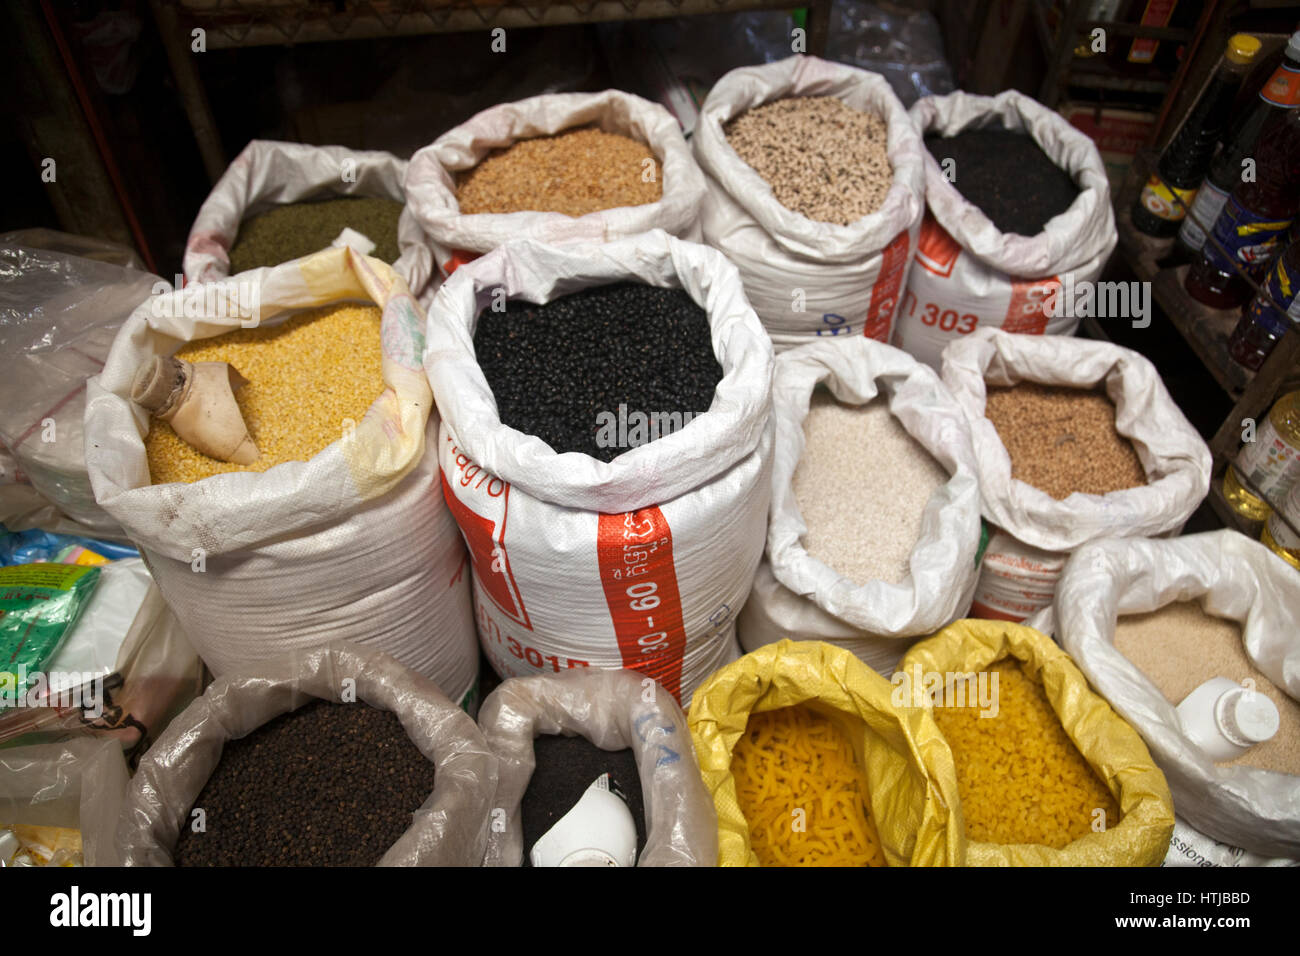 Pasta and Pulses at Psa Leu Market in Siem Reap - Cambodia Stock Photo